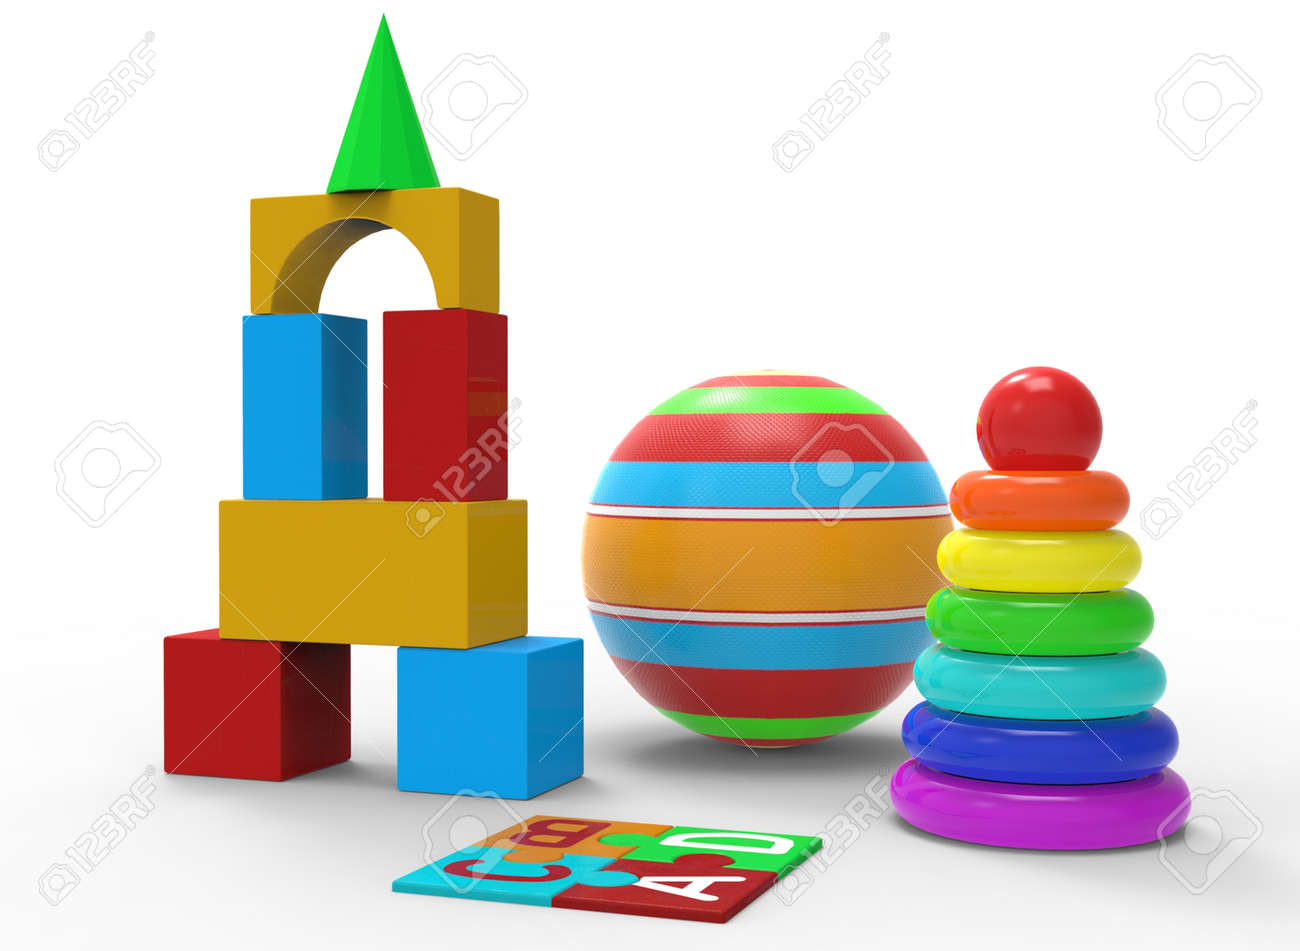 childrens toys of simple shape, ball, pyramid 3d-illustration 3d-rendering - 165255282